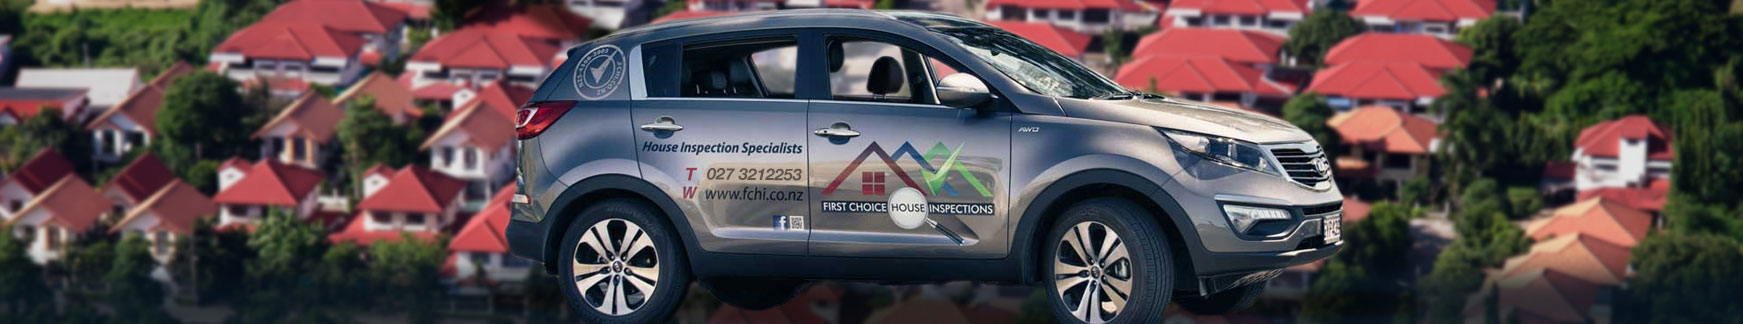 WE ARE A COMPANY SPECIALISING IN HOUSE INSPECTIONS IN THE AUCKLAND AREA